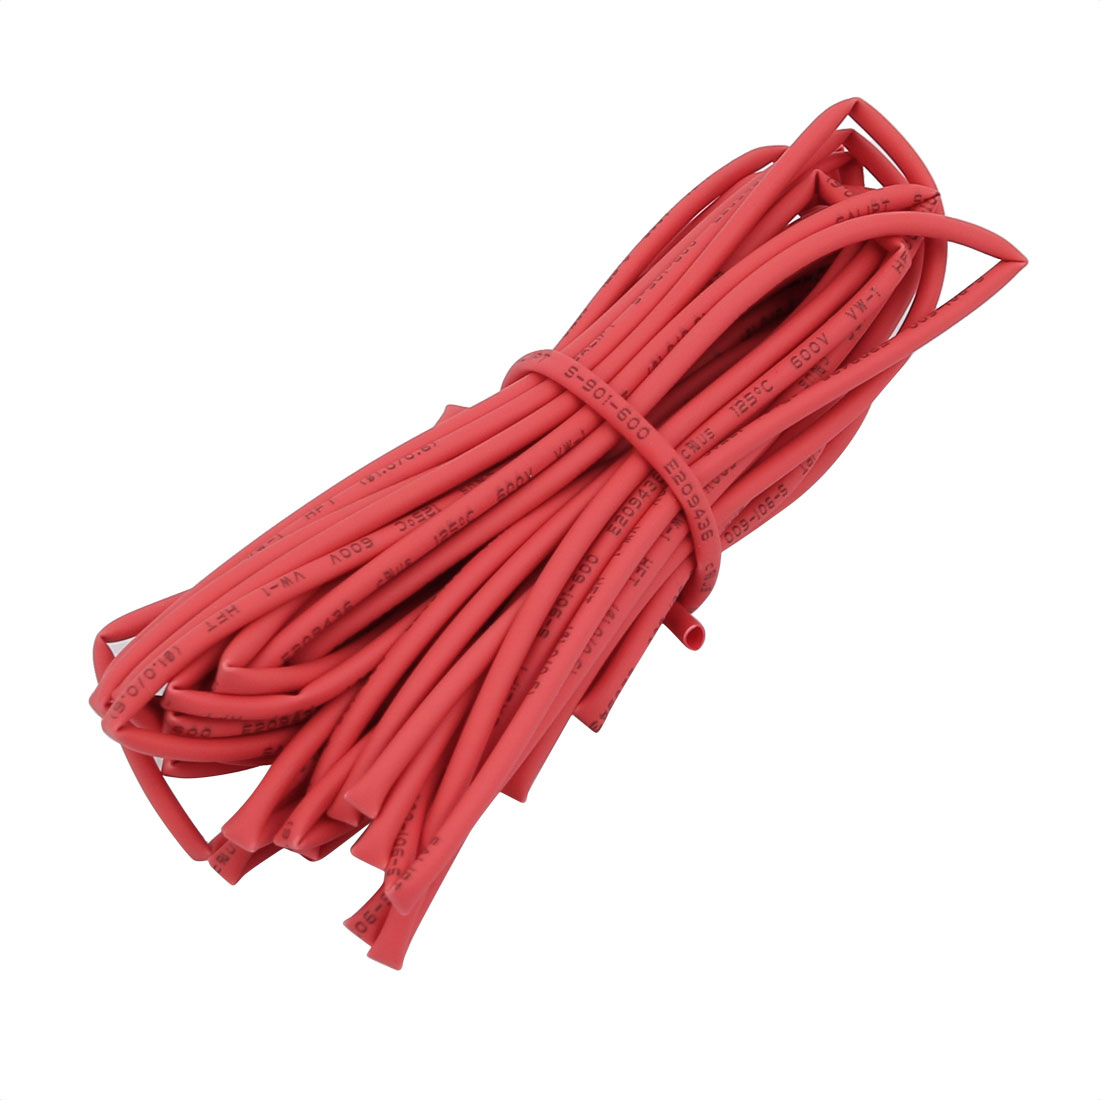 5M 0.04in Inner Dia Polyolefin Flame Retardant Tube Red for Wire Repairing